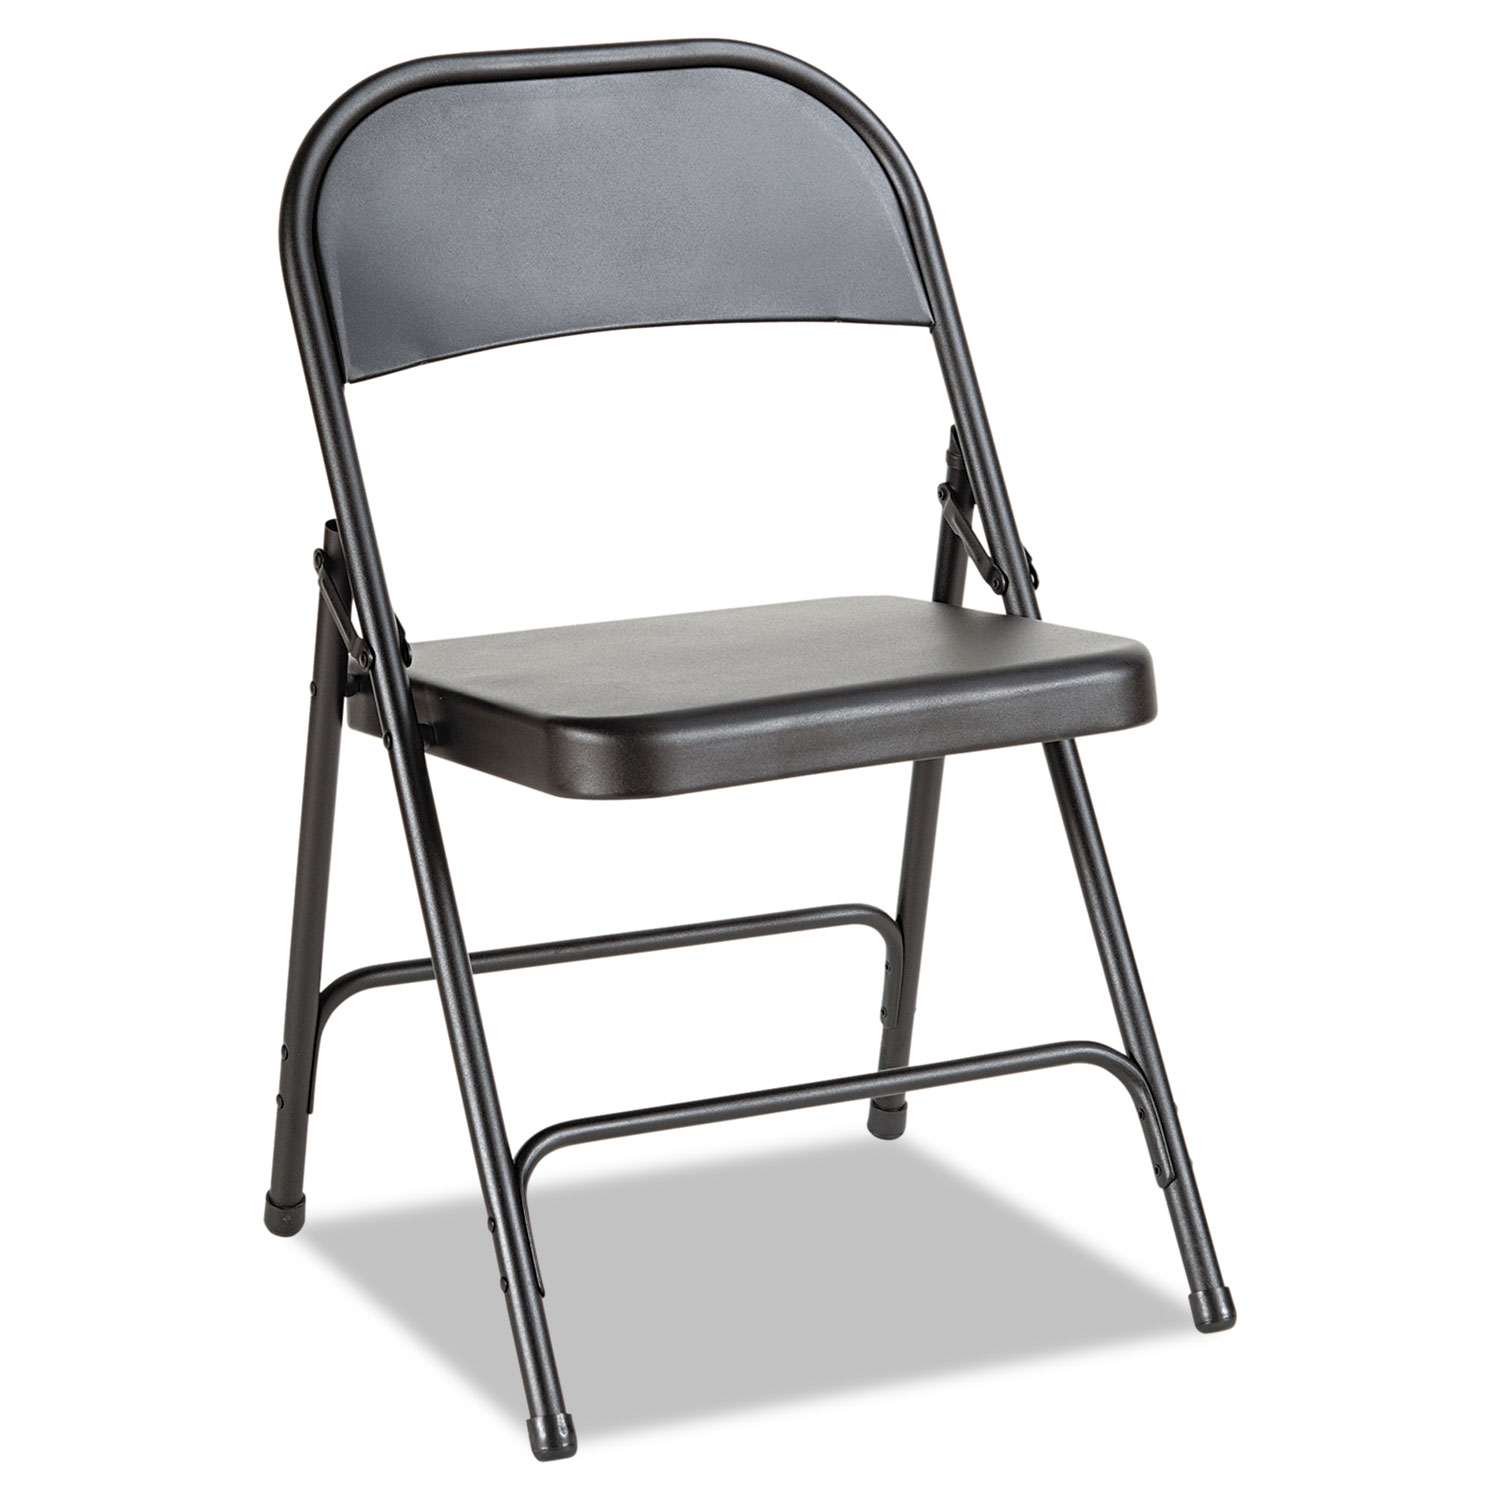 ALEFC94B Thumbnail 1 ...  sc 1 st  OnTimeSupplies.com & Steel Folding Chair with Two-Brace Support by Alera® ALEFC94B ...